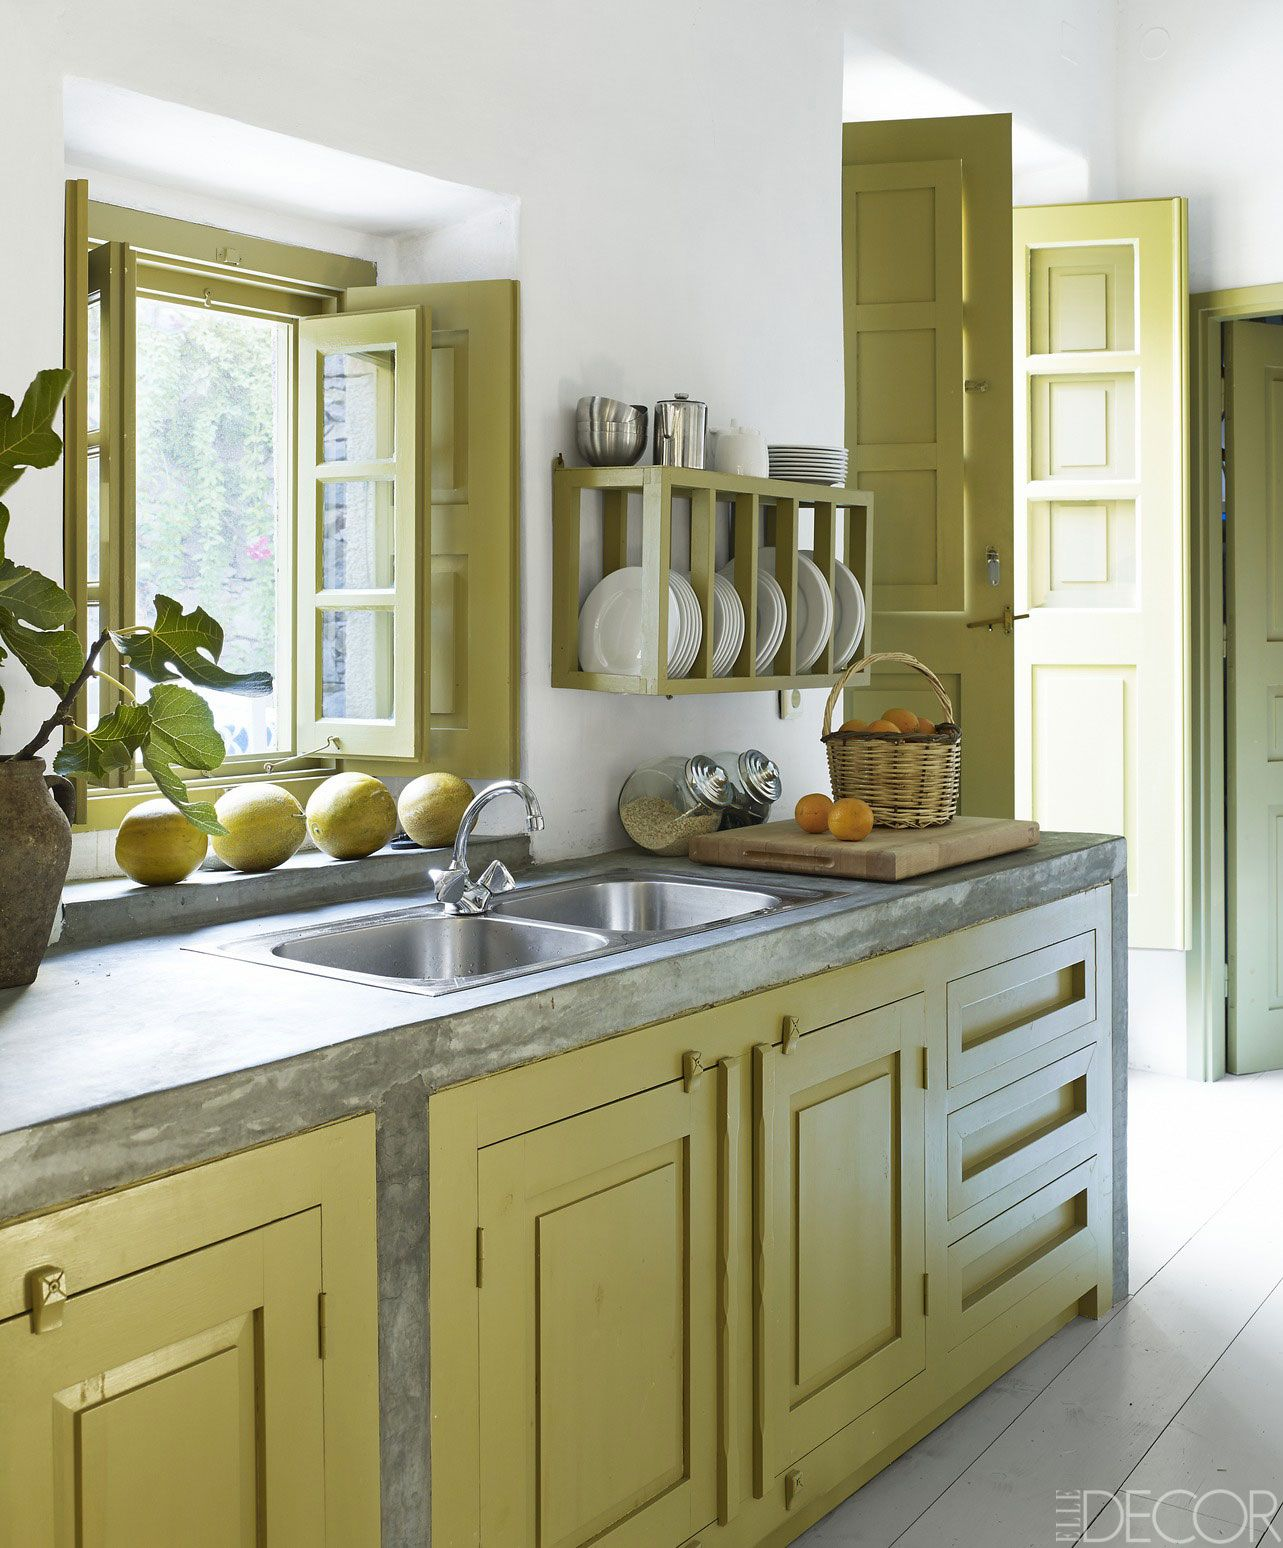 Kitchen Pictures Ideas Unique 50 Small Kitchen Design Ideas  Decorating Tiny Kitchens Design Inspiration